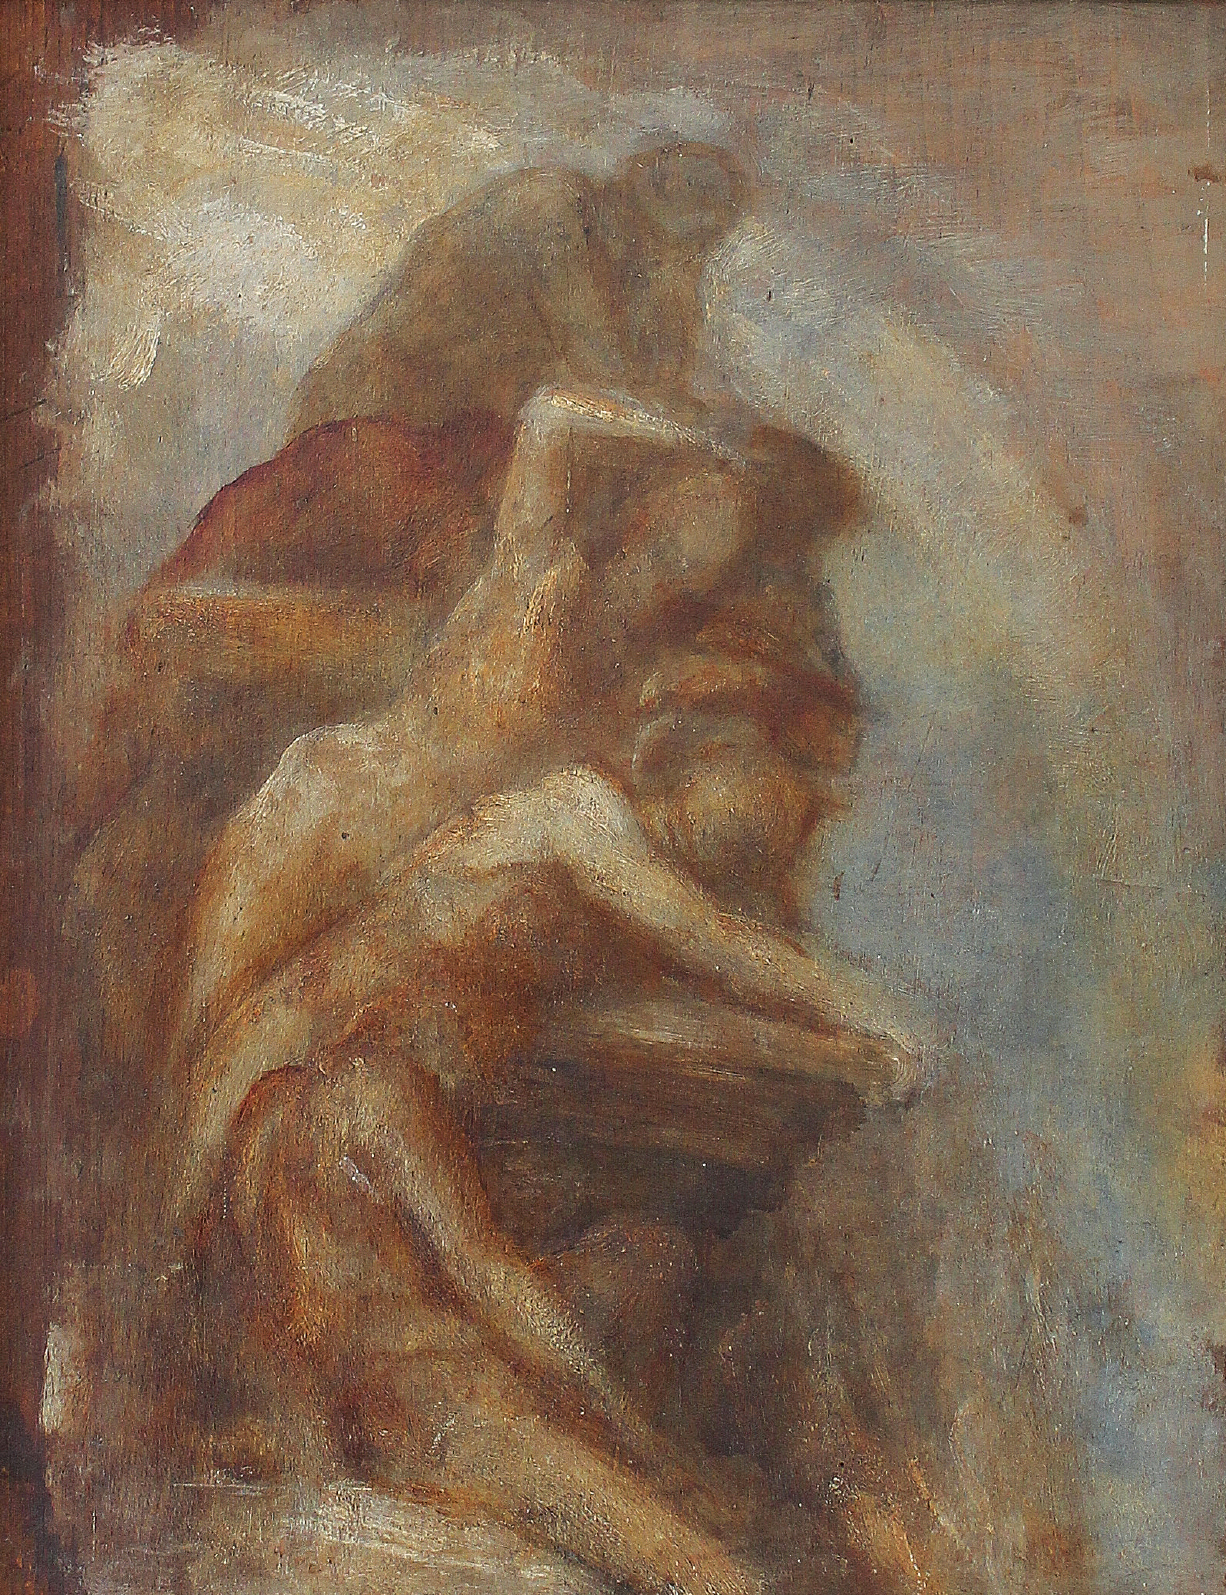 GEORGE FREDERICK WATTS, O.M., R.A. | Fire, Study for the Carlton House Terrace Fresco, The Elements